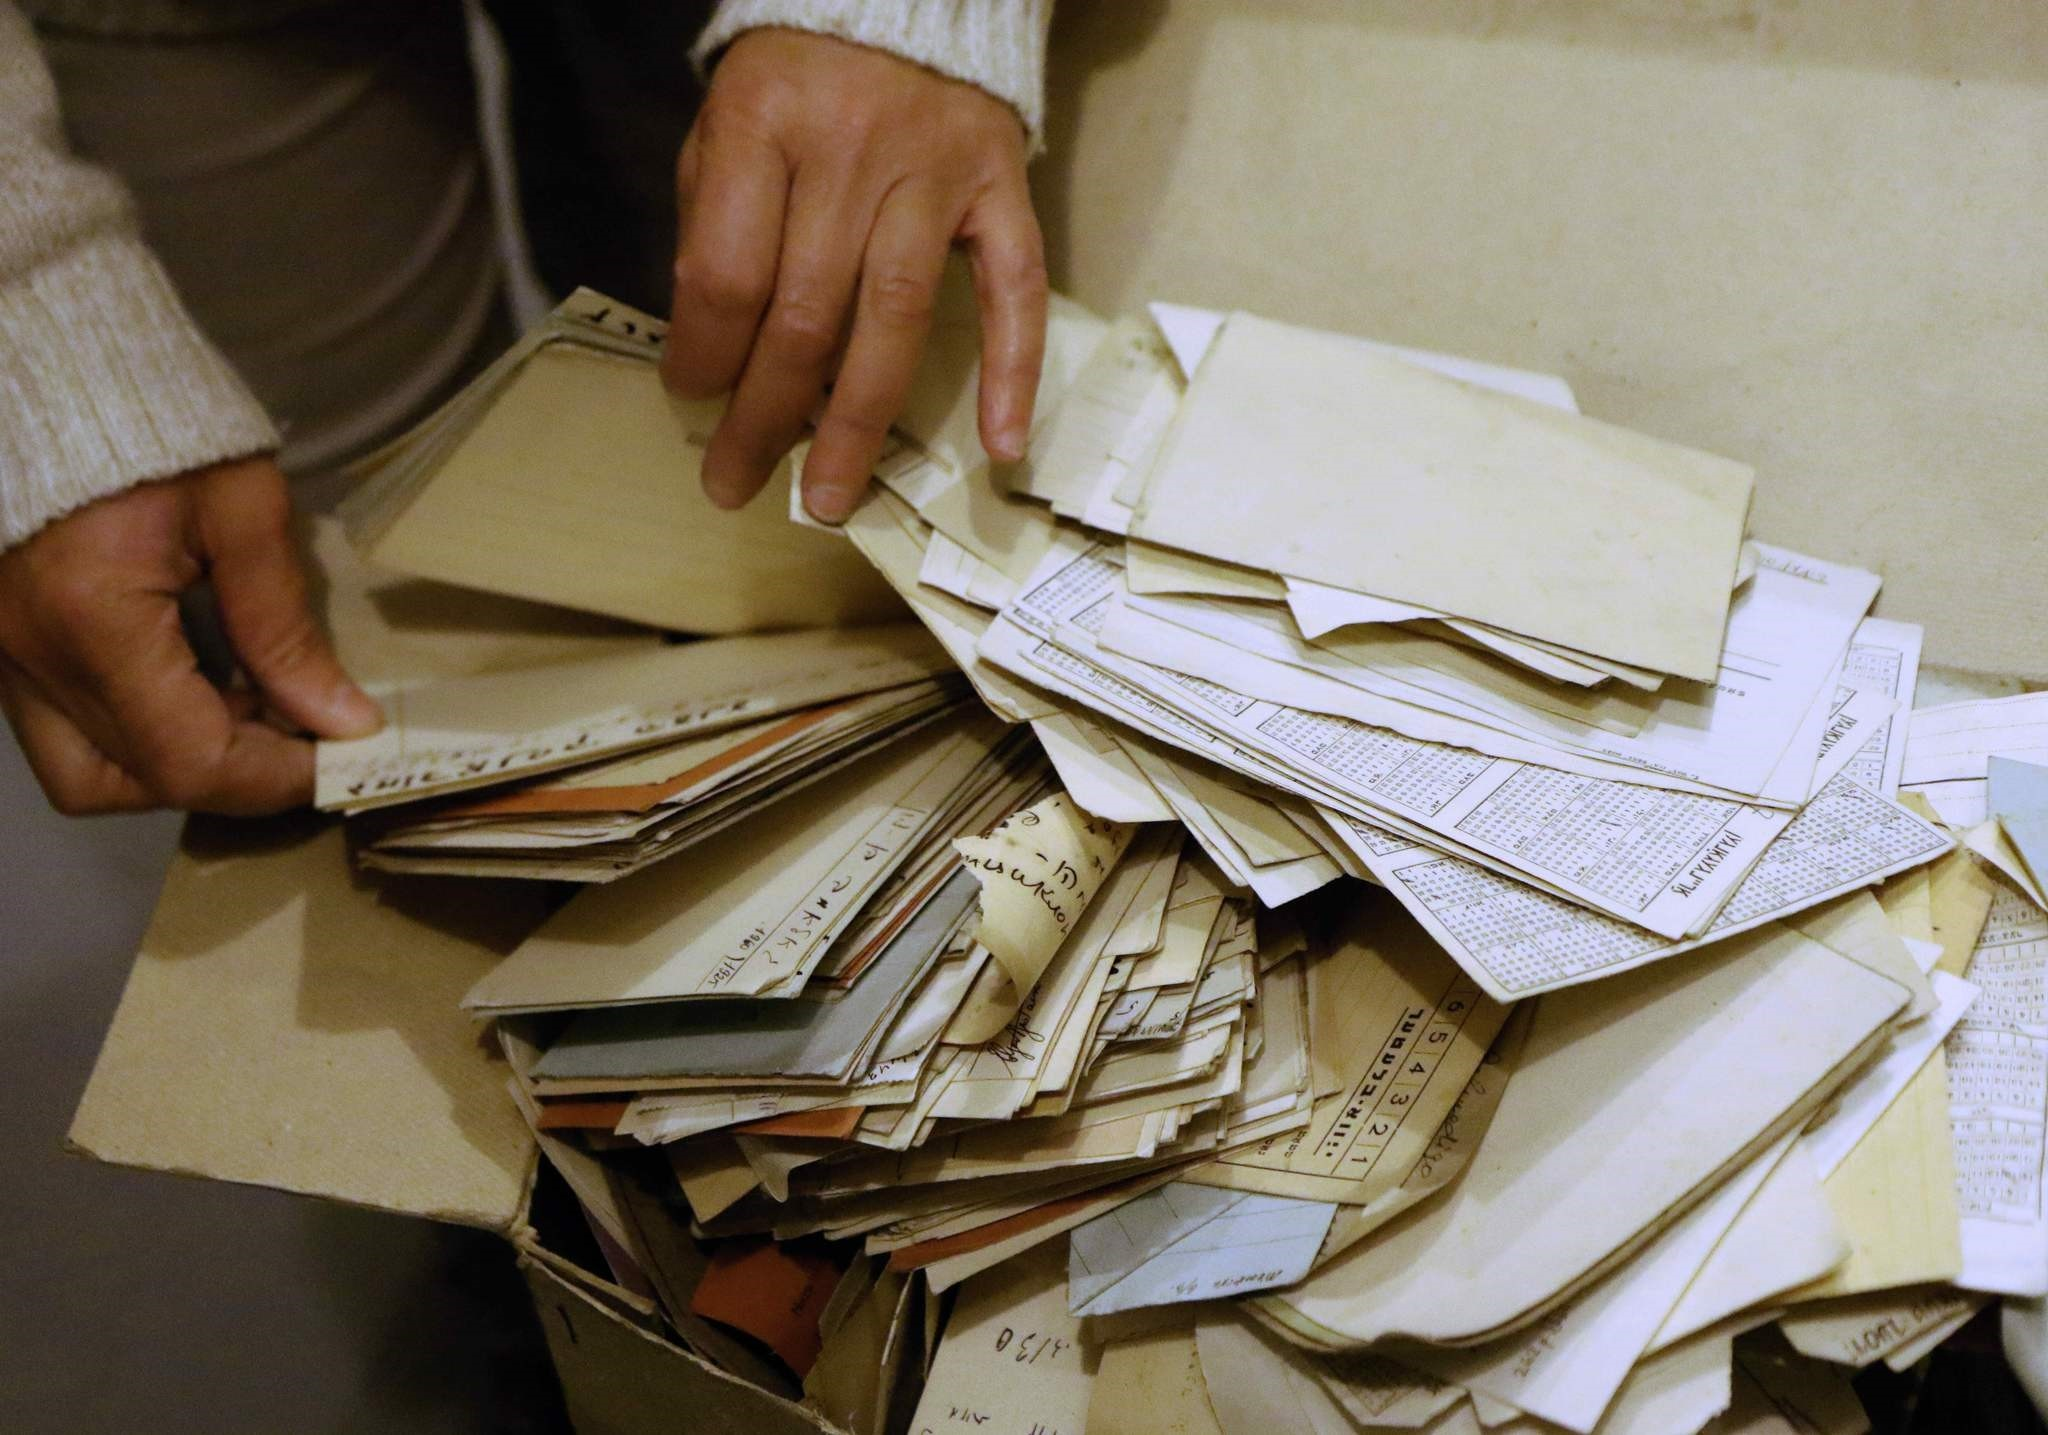 Judaica Research Centre chief Lara Lempertiene files through rediscovered Jewish documents, long thought to have been destroyed during World War II, in Lithuanian national library in Vilnius on November 3, 2017. (AFP Photo)